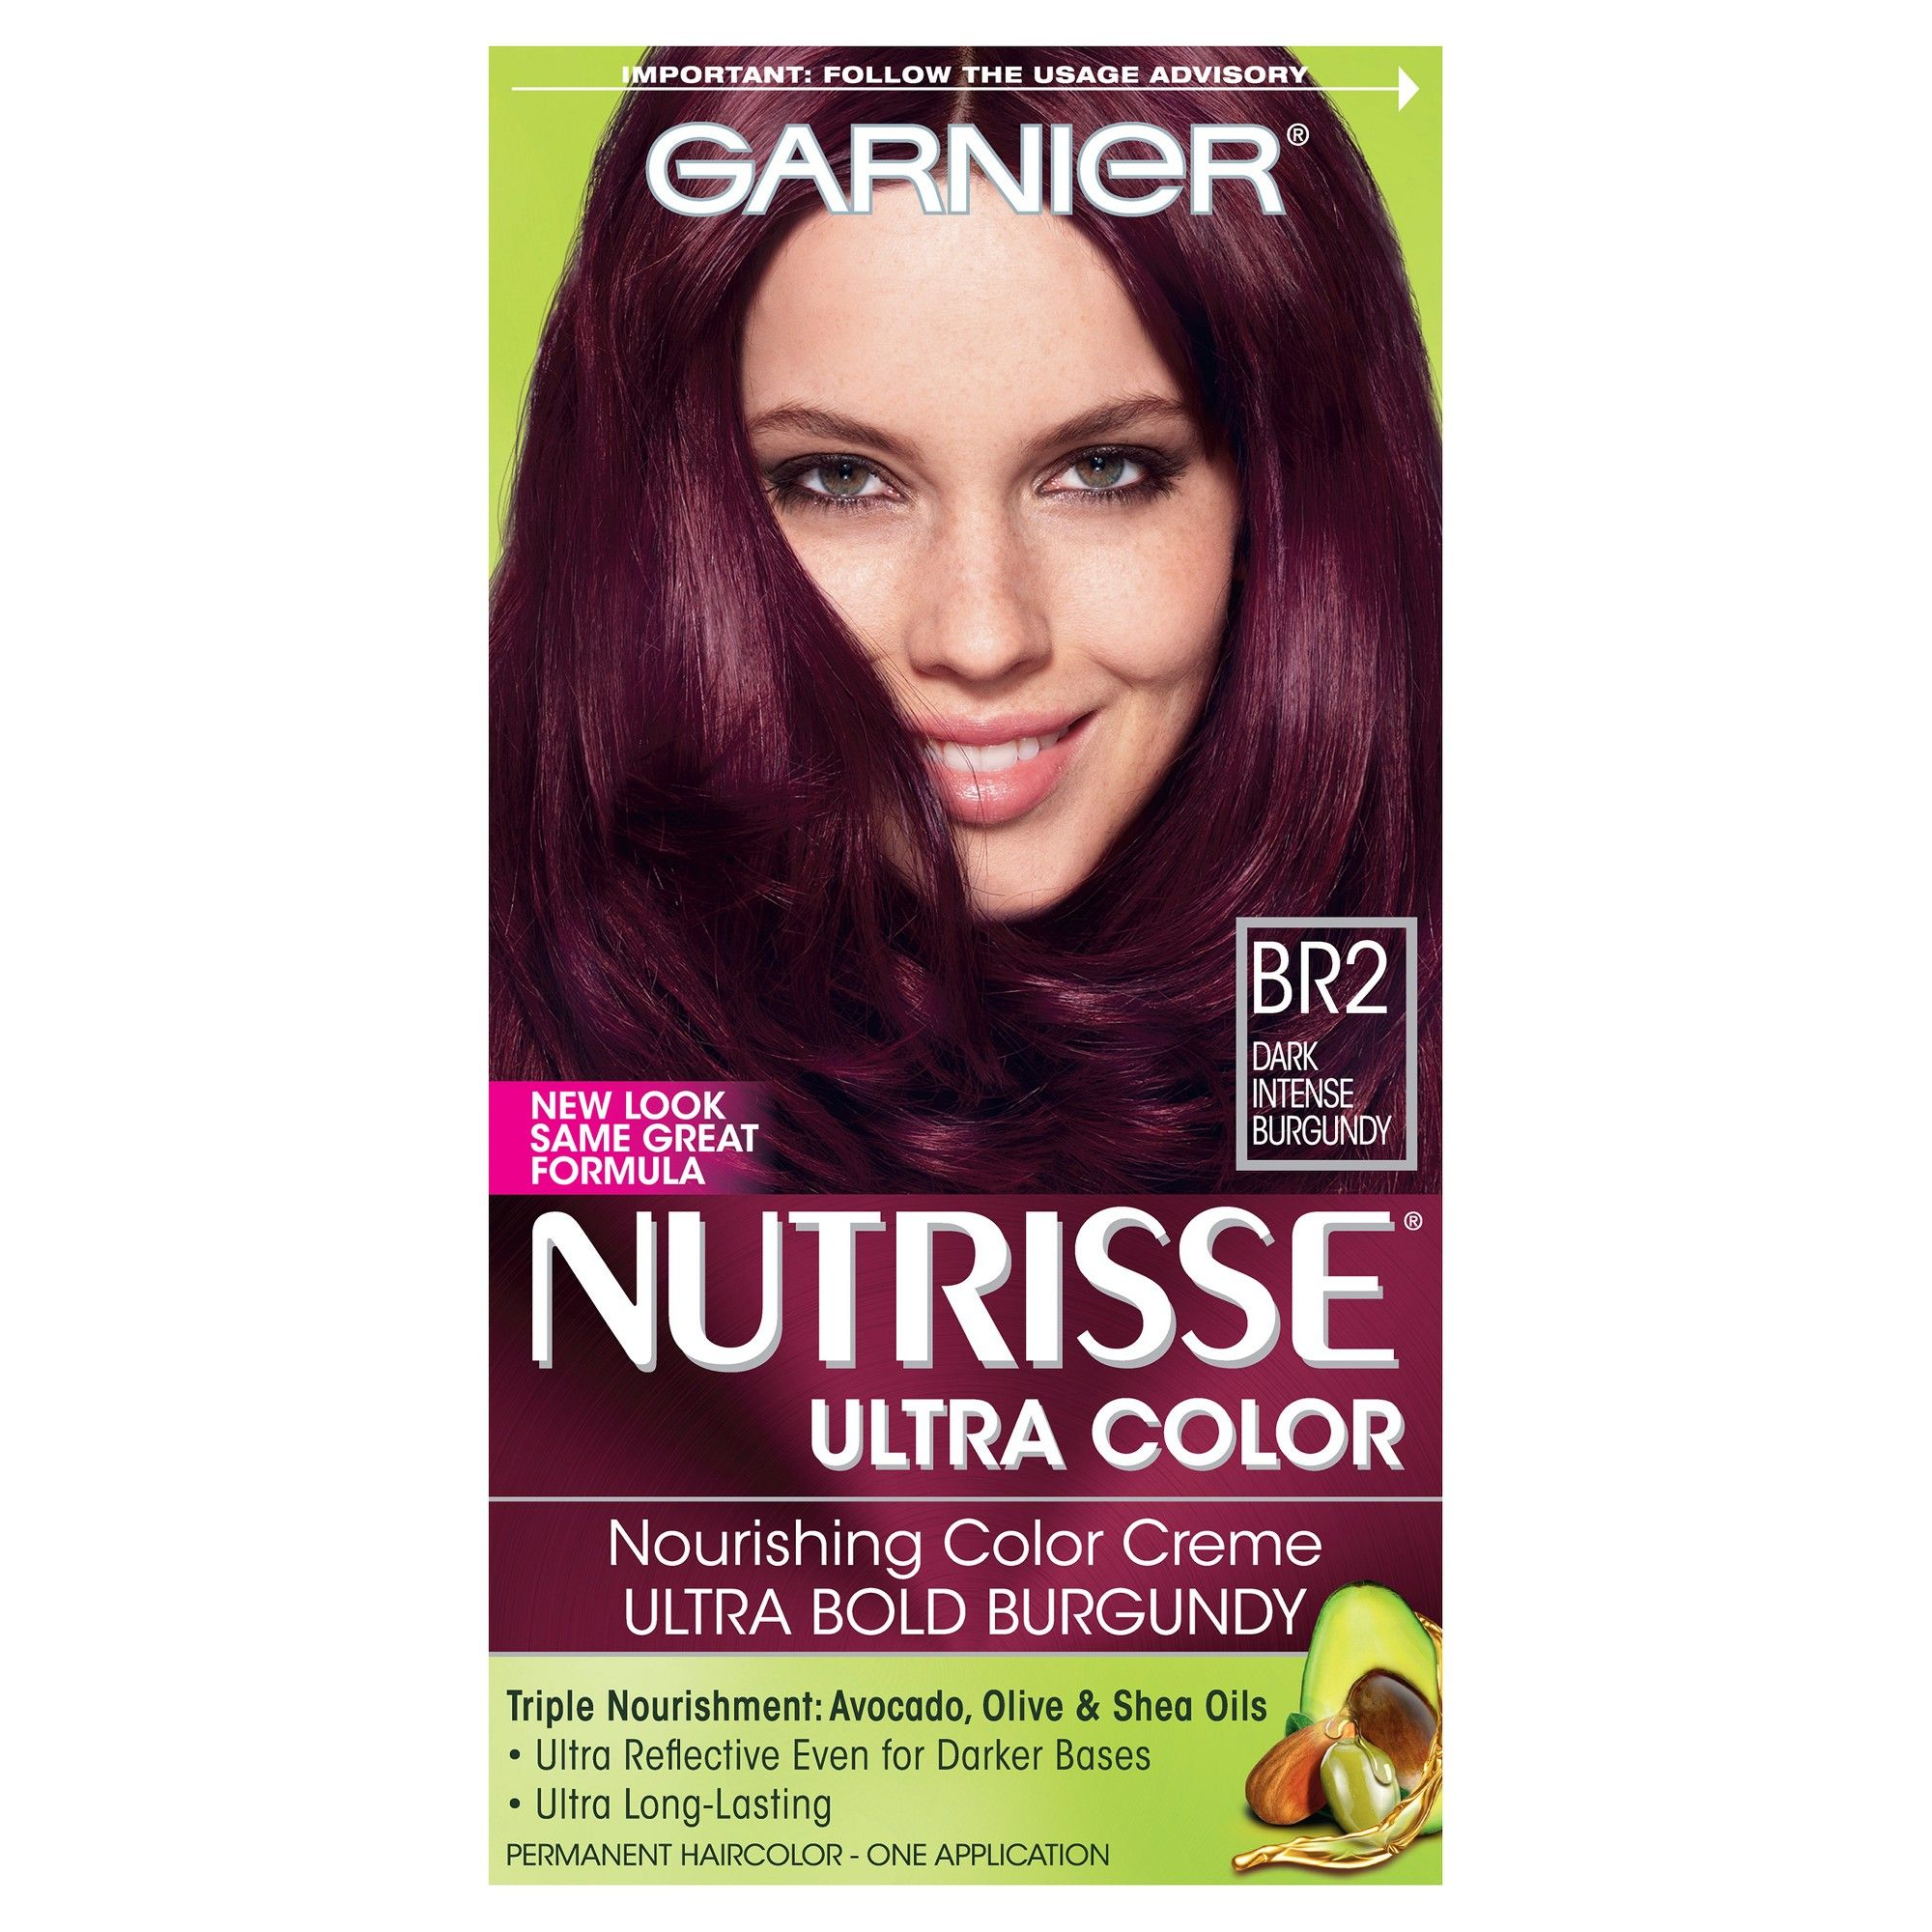 Garnier Nutrisse Ultra Color Nourishing Color Creme Br2 Dark Intense Burgundy